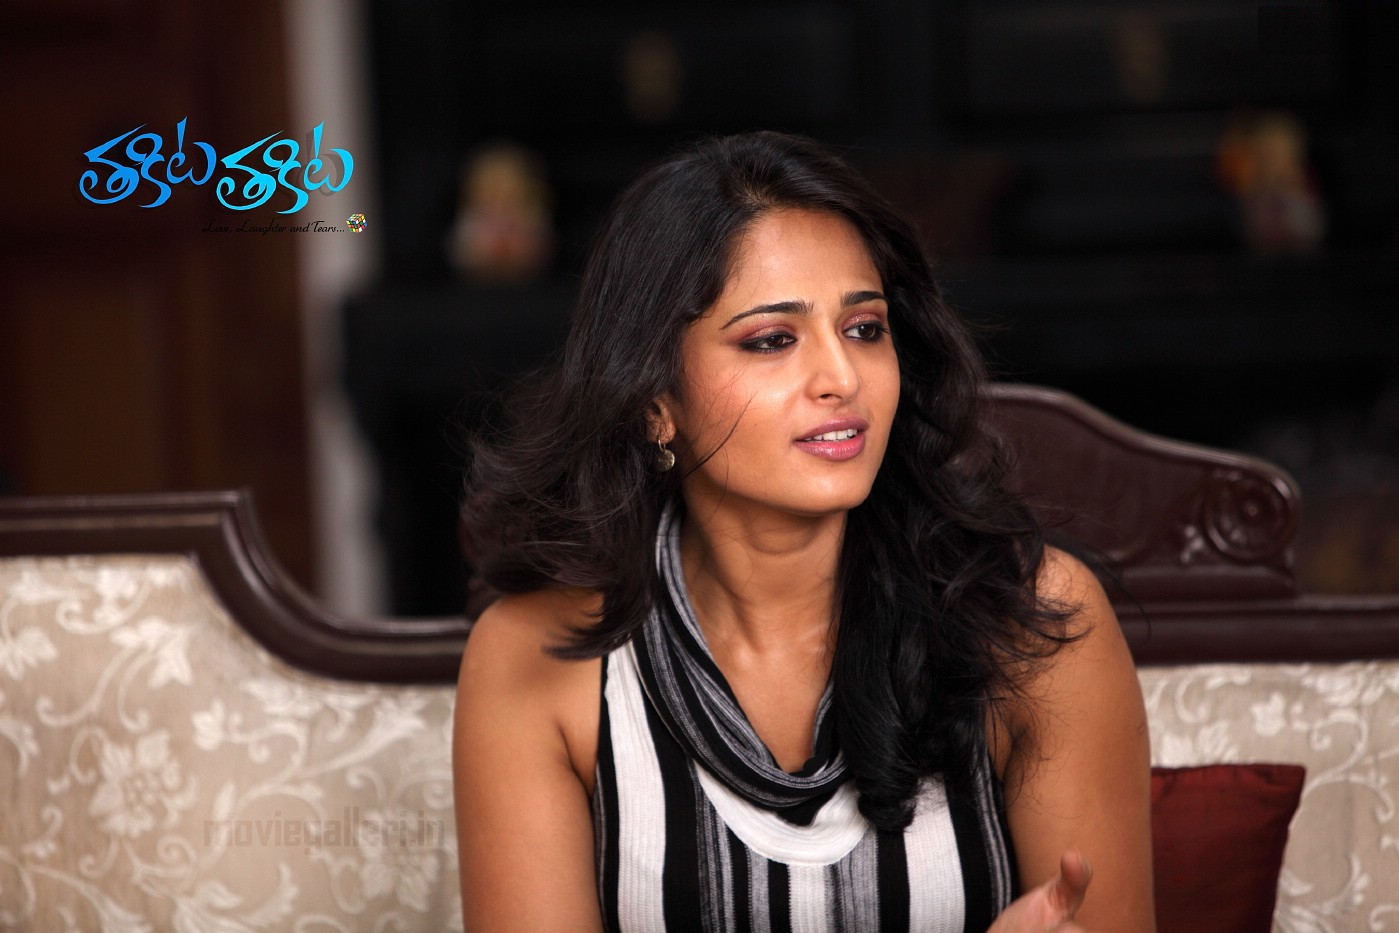 http://3.bp.blogspot.com/_Fbqc6JbQSVw/THX1U7wsf3I/AAAAAAAAdFY/o7_z6LmijWA/s1600/Anushka_Shetty_widescreen_hq_wallpapers_11.jpg